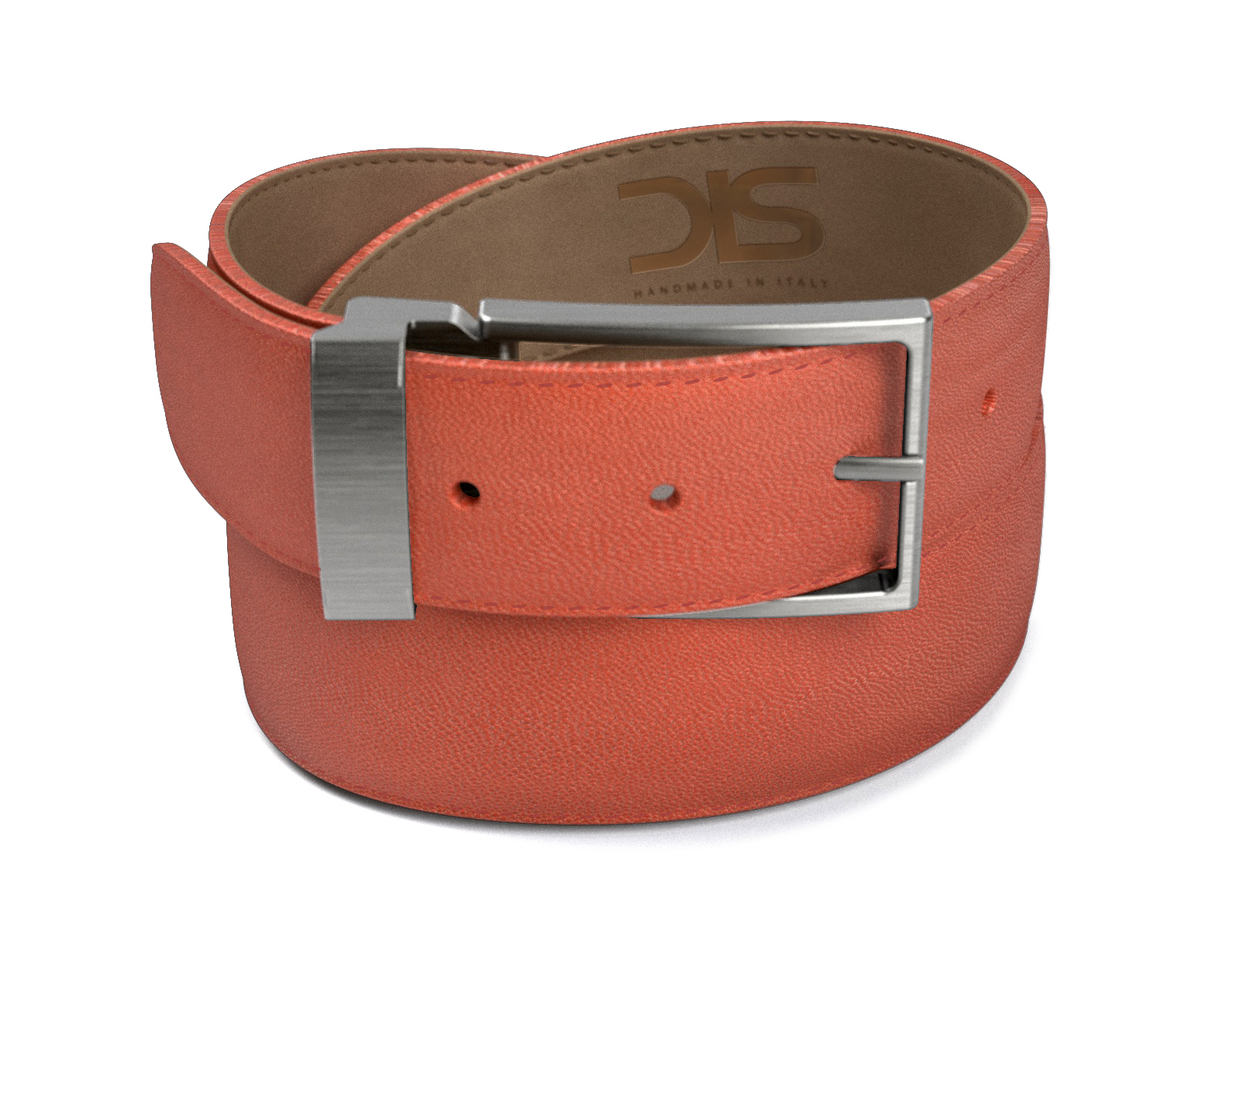 Tan grain leather belt with opaque buckle